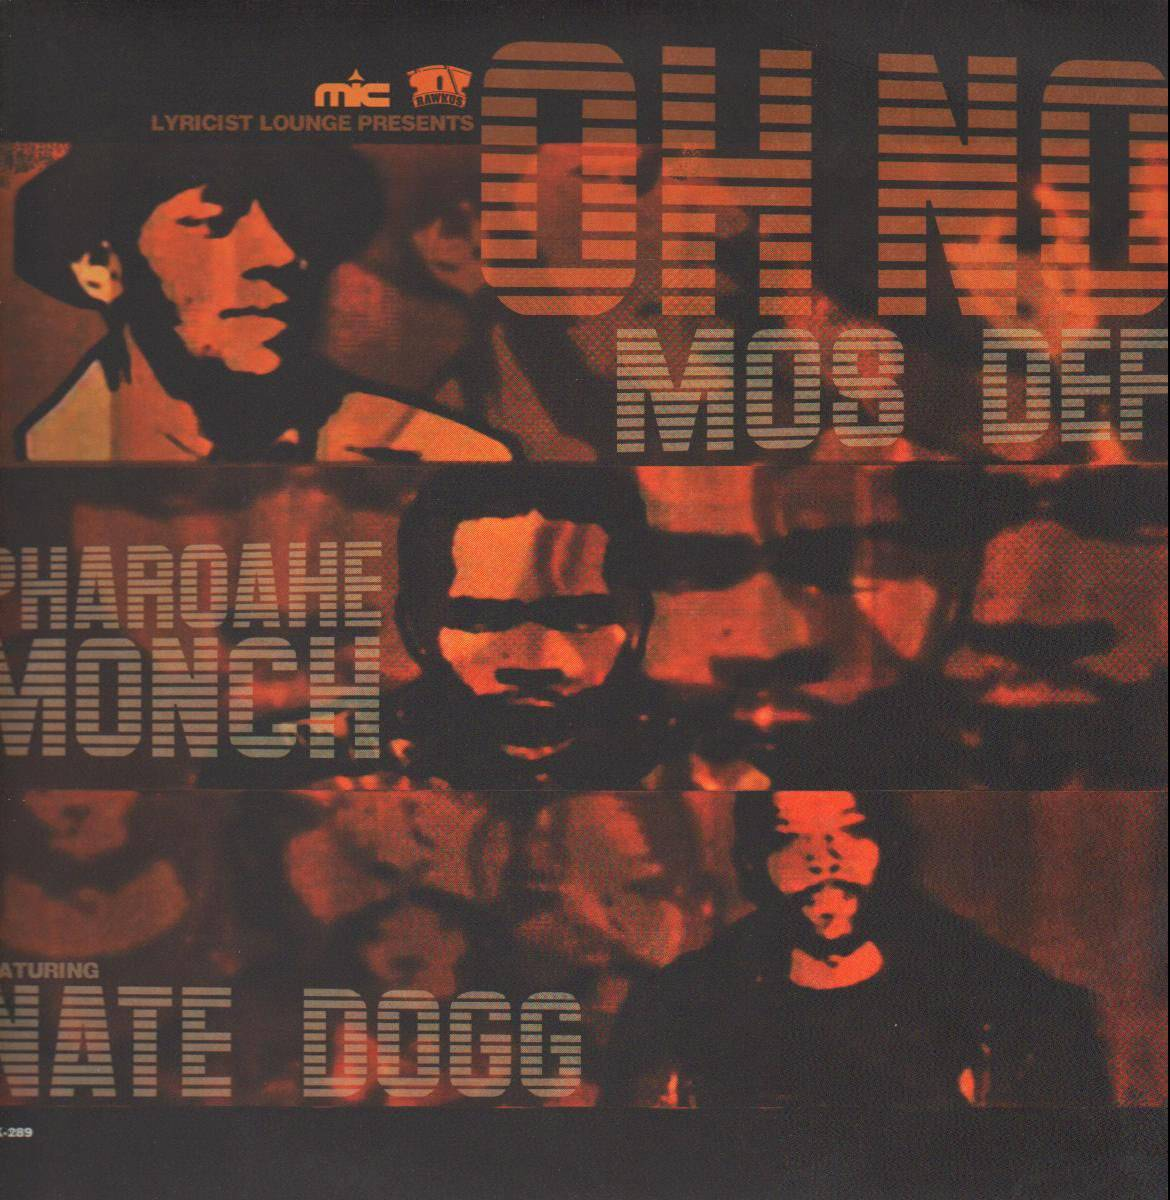 """Mos Def featuring Pharoahe Monch and Nate Dogg, """"Oh No"""" - Nate got his East Coast underground on with this 2000 single, where he teamed up with Mos Def and Pharoahe Monch for a joint that would hit No. 1 on the Billboard Rap chart.(Photo: Rawkus Records)"""